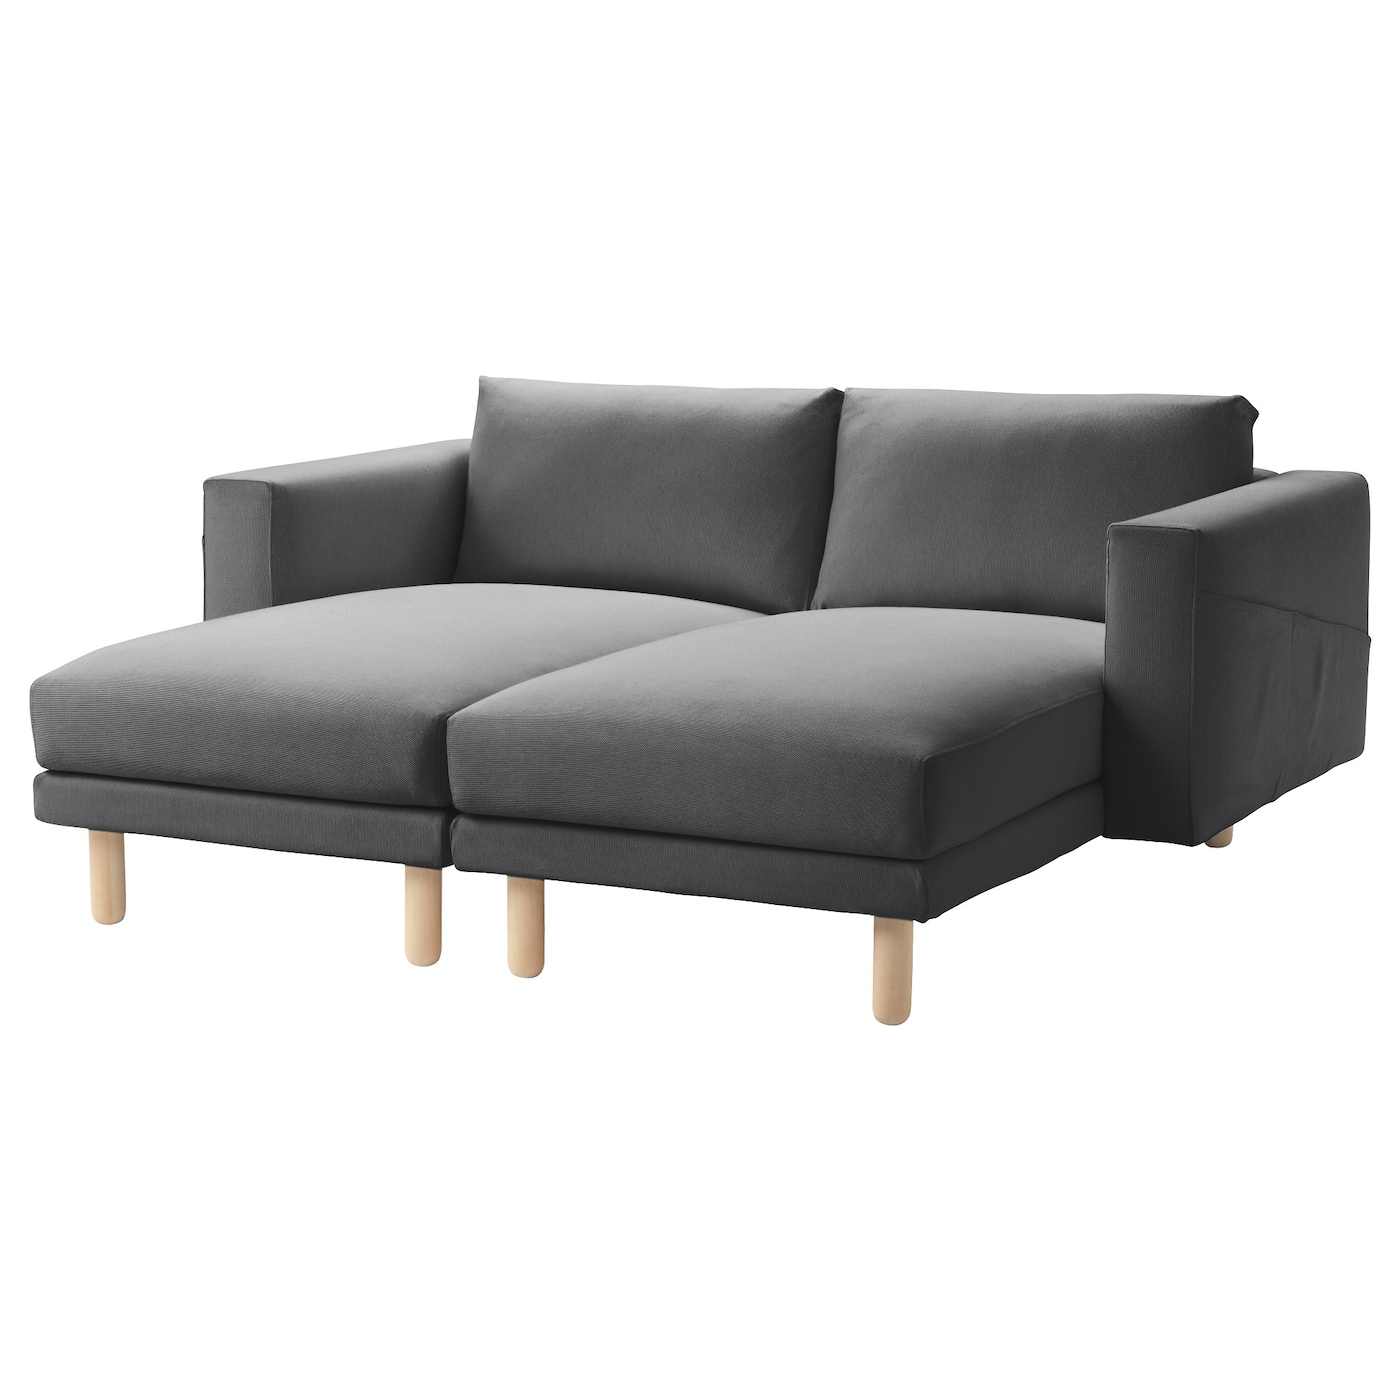 norsborg 2 chaise longues finnsta dark grey birch ikea. Black Bedroom Furniture Sets. Home Design Ideas